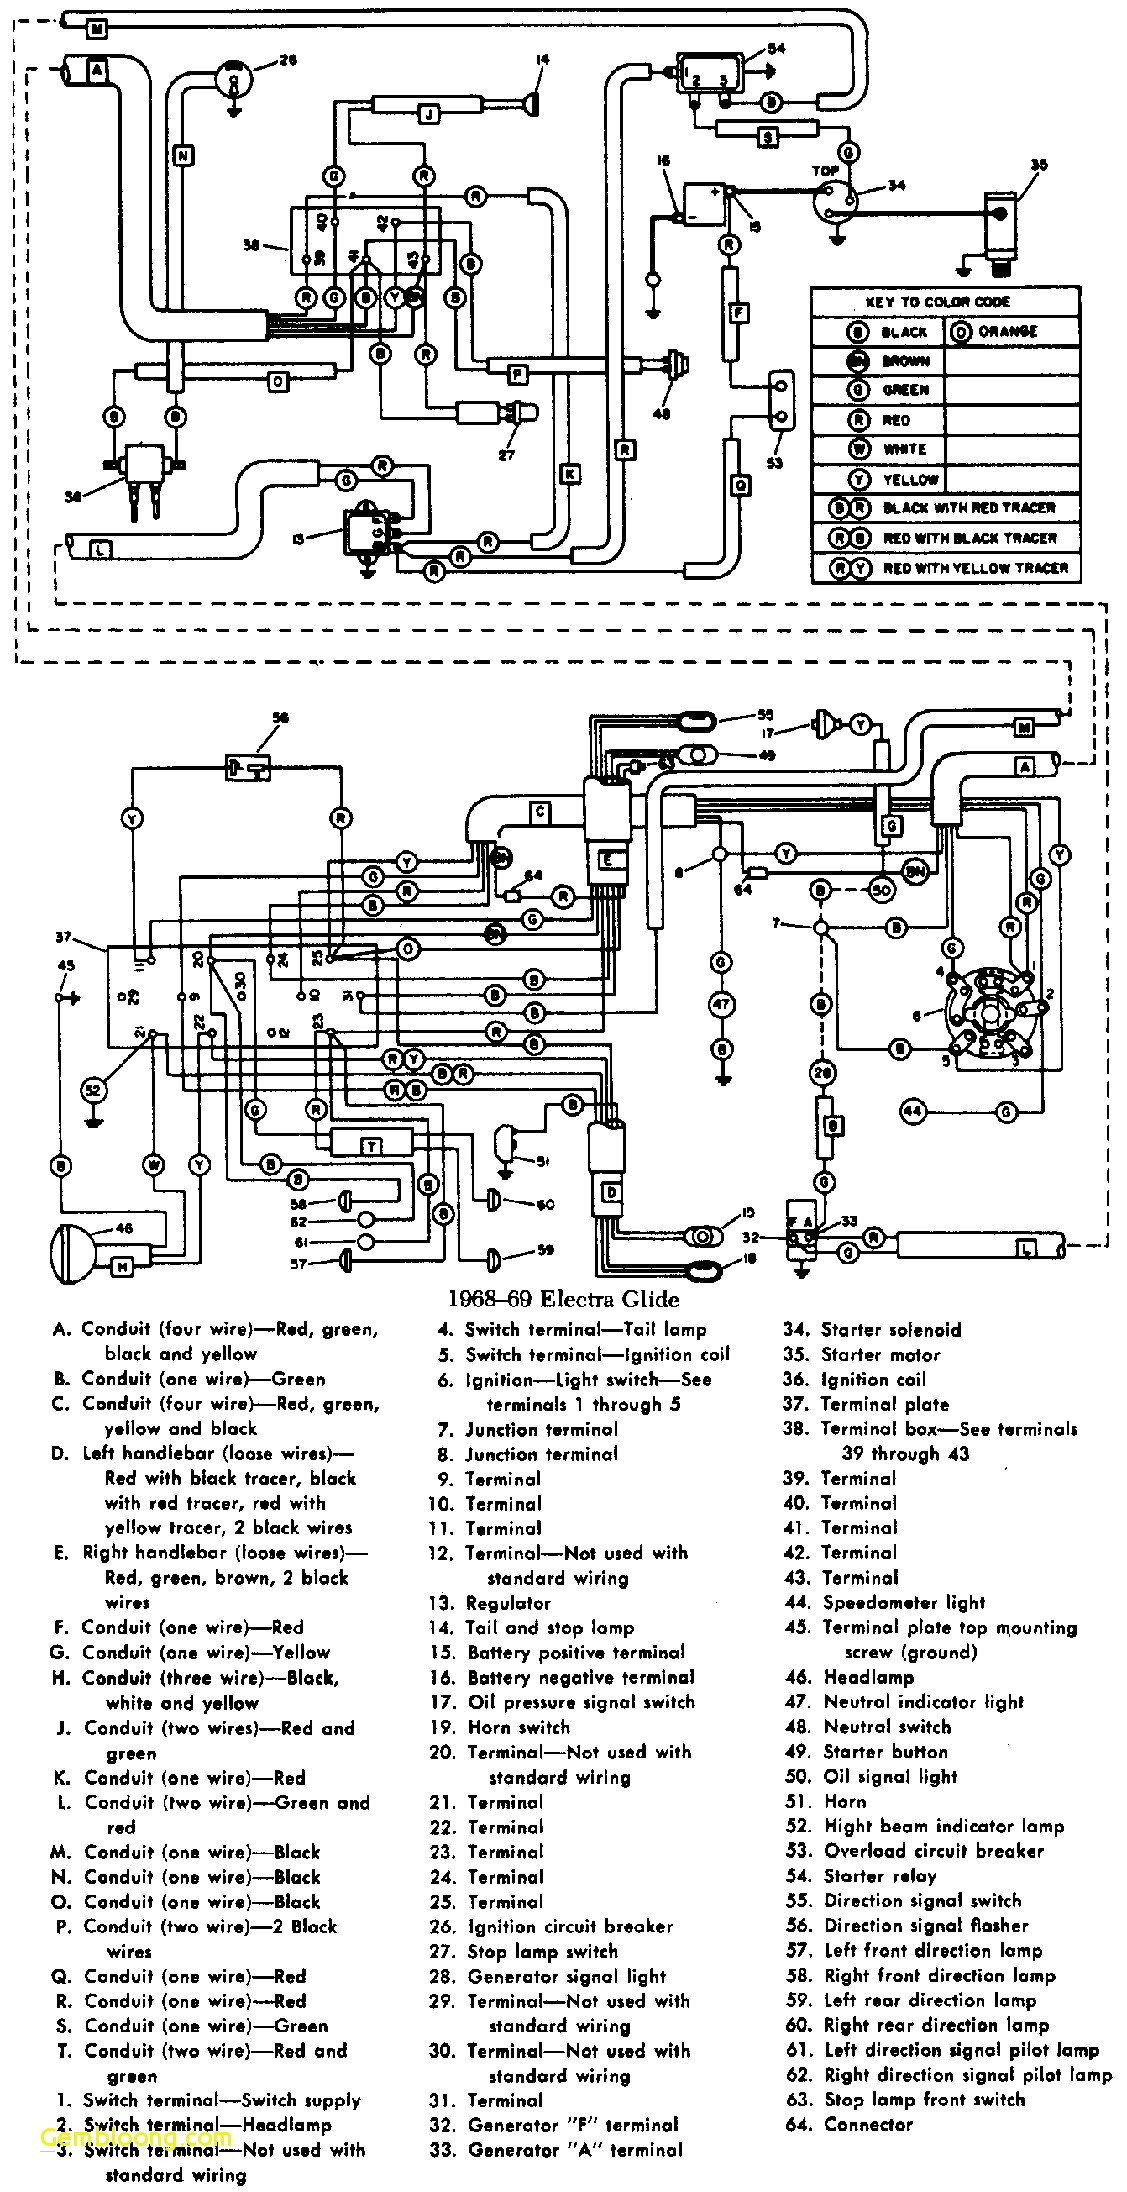 free ford xy gt wiring diagram harley radio wiring harness